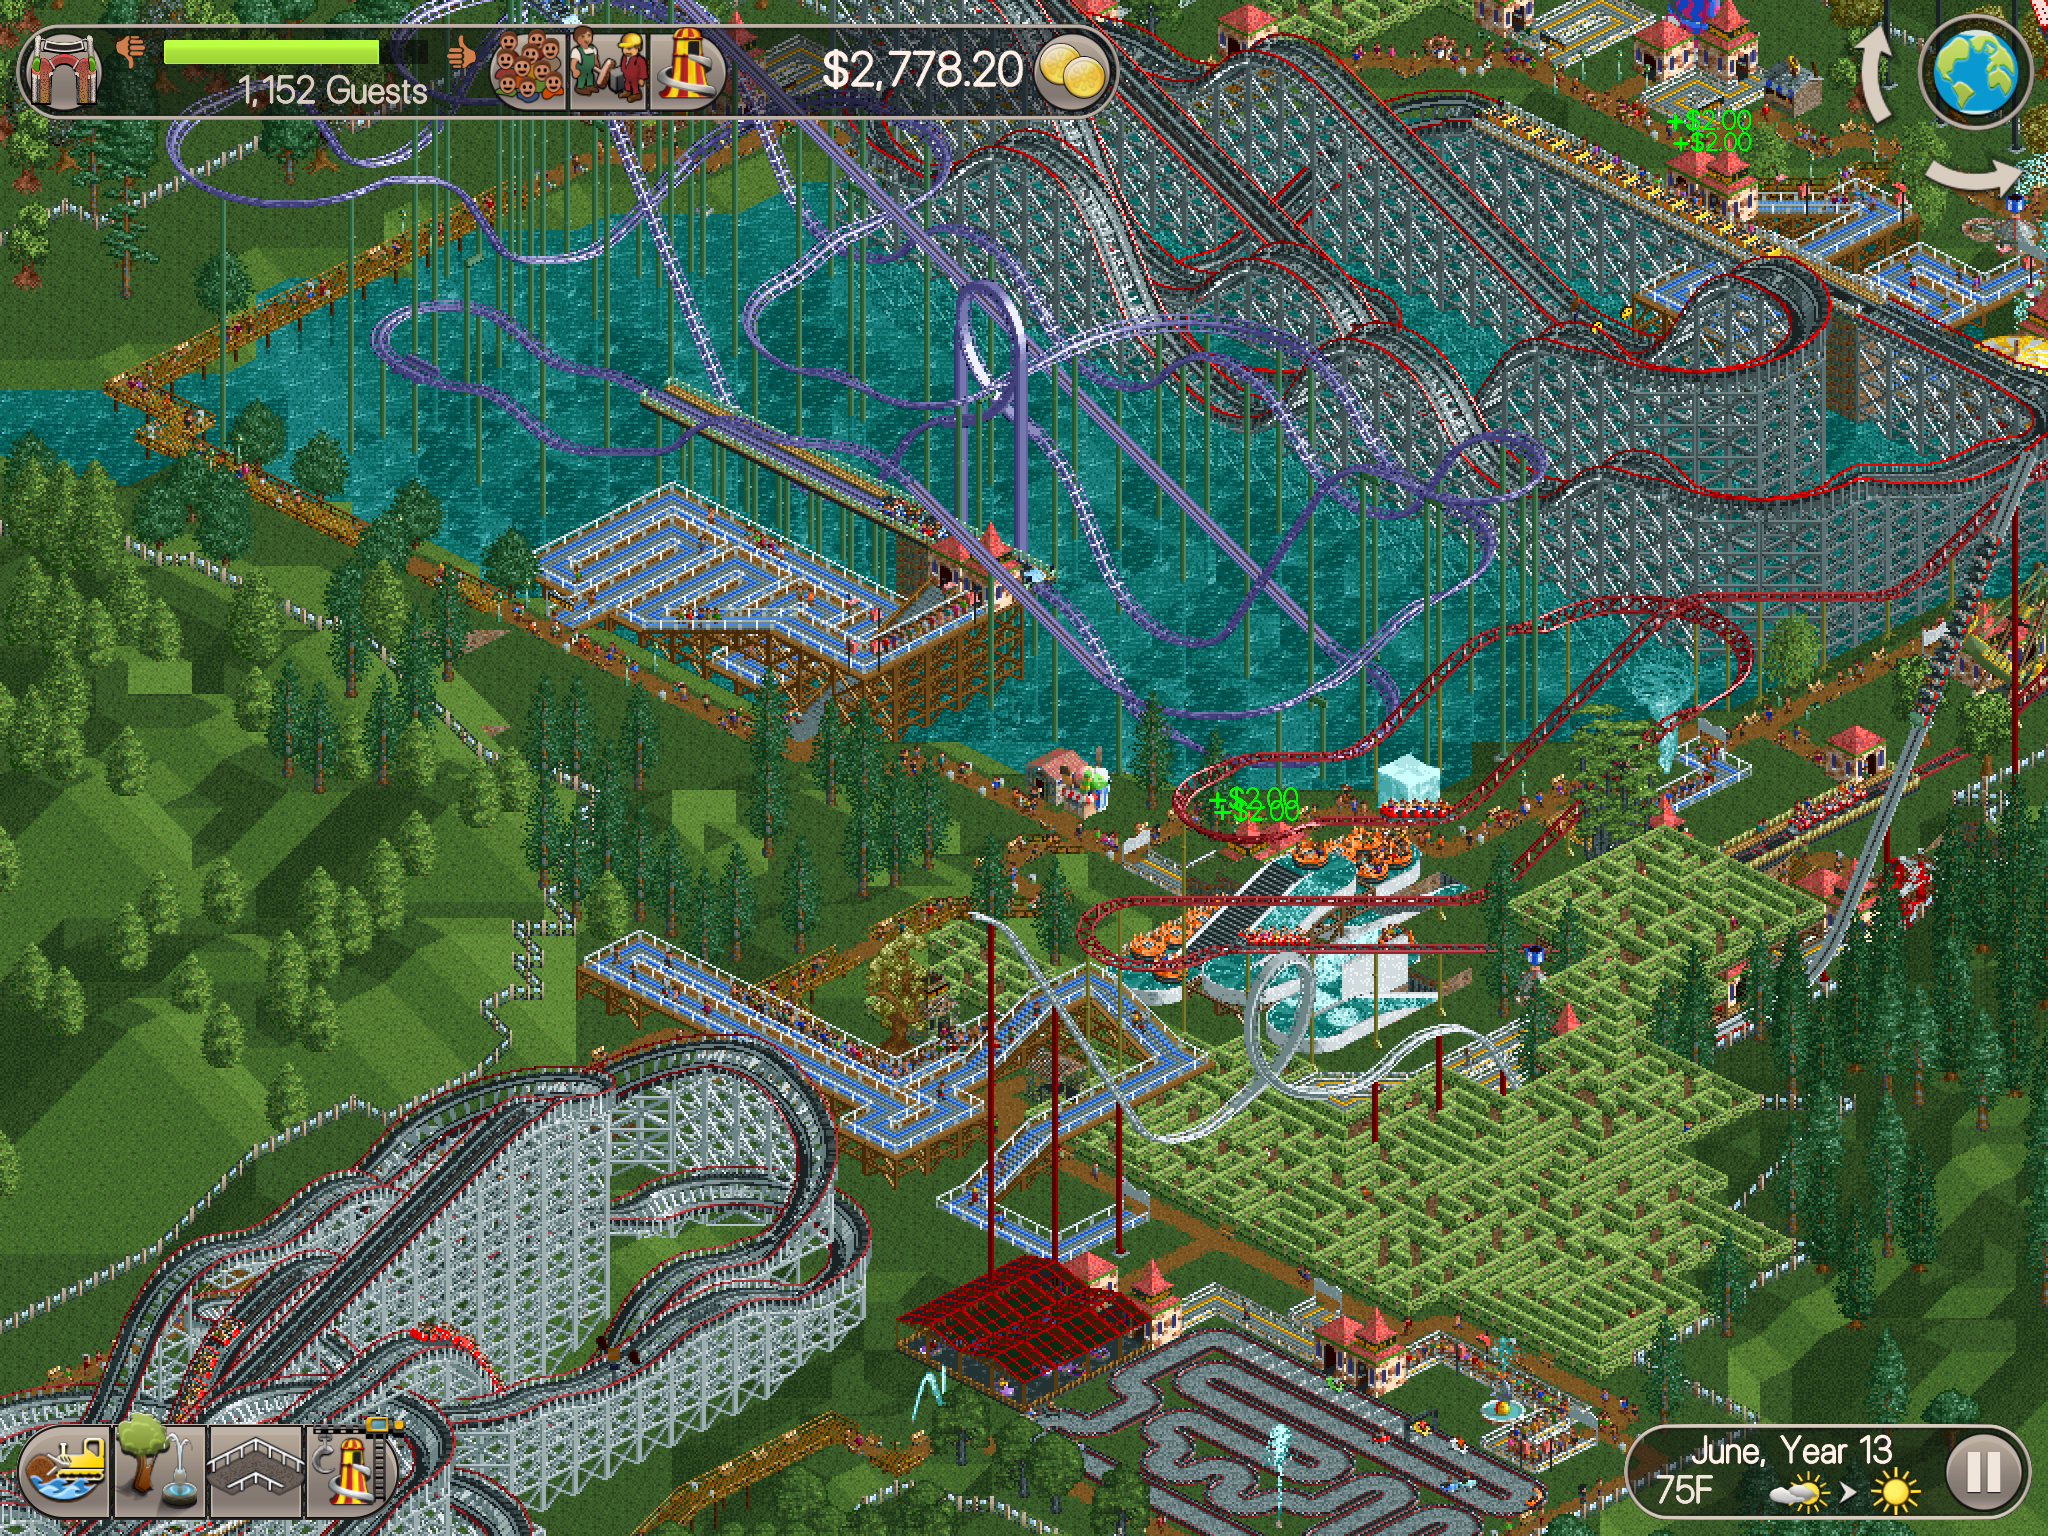 RollerCoaster Tycoon Classic for iOS: Nostalgia Goes Mobile - Leaf&Core